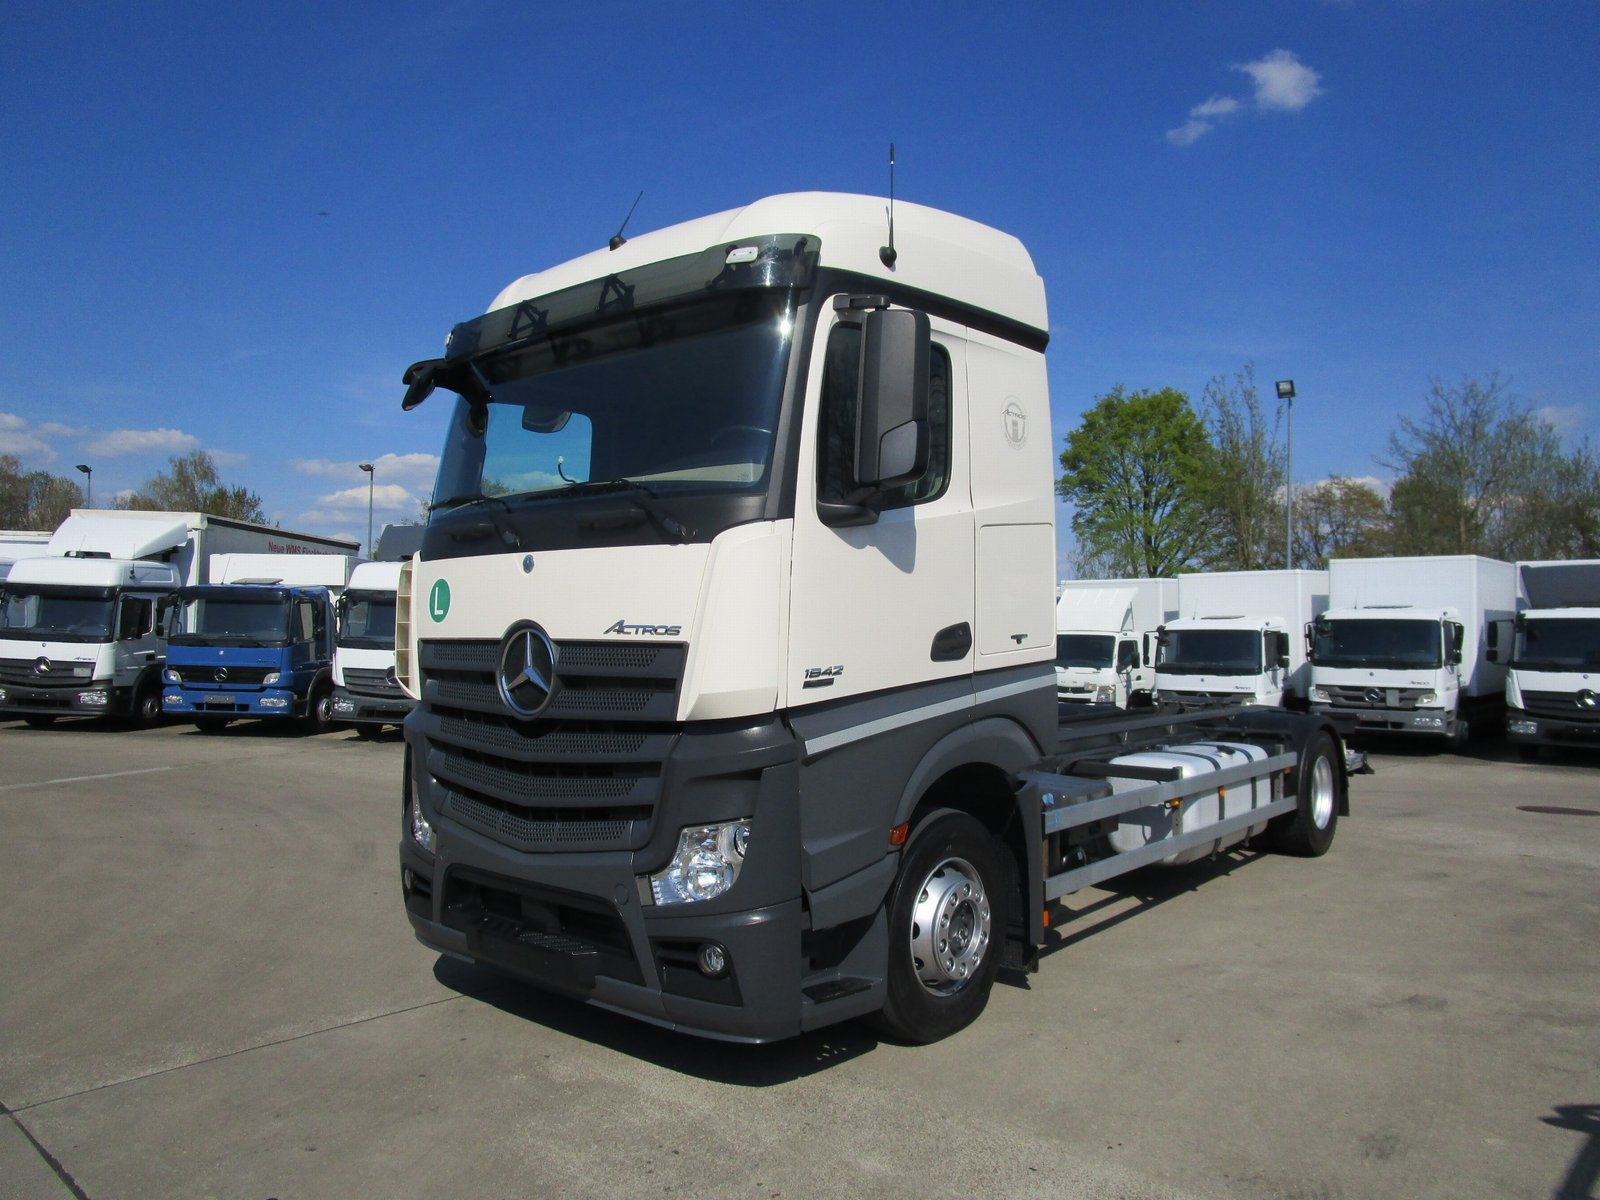 ACTROS 1842 LL Wechsel-Fahrgestell U-LBW 2 to.